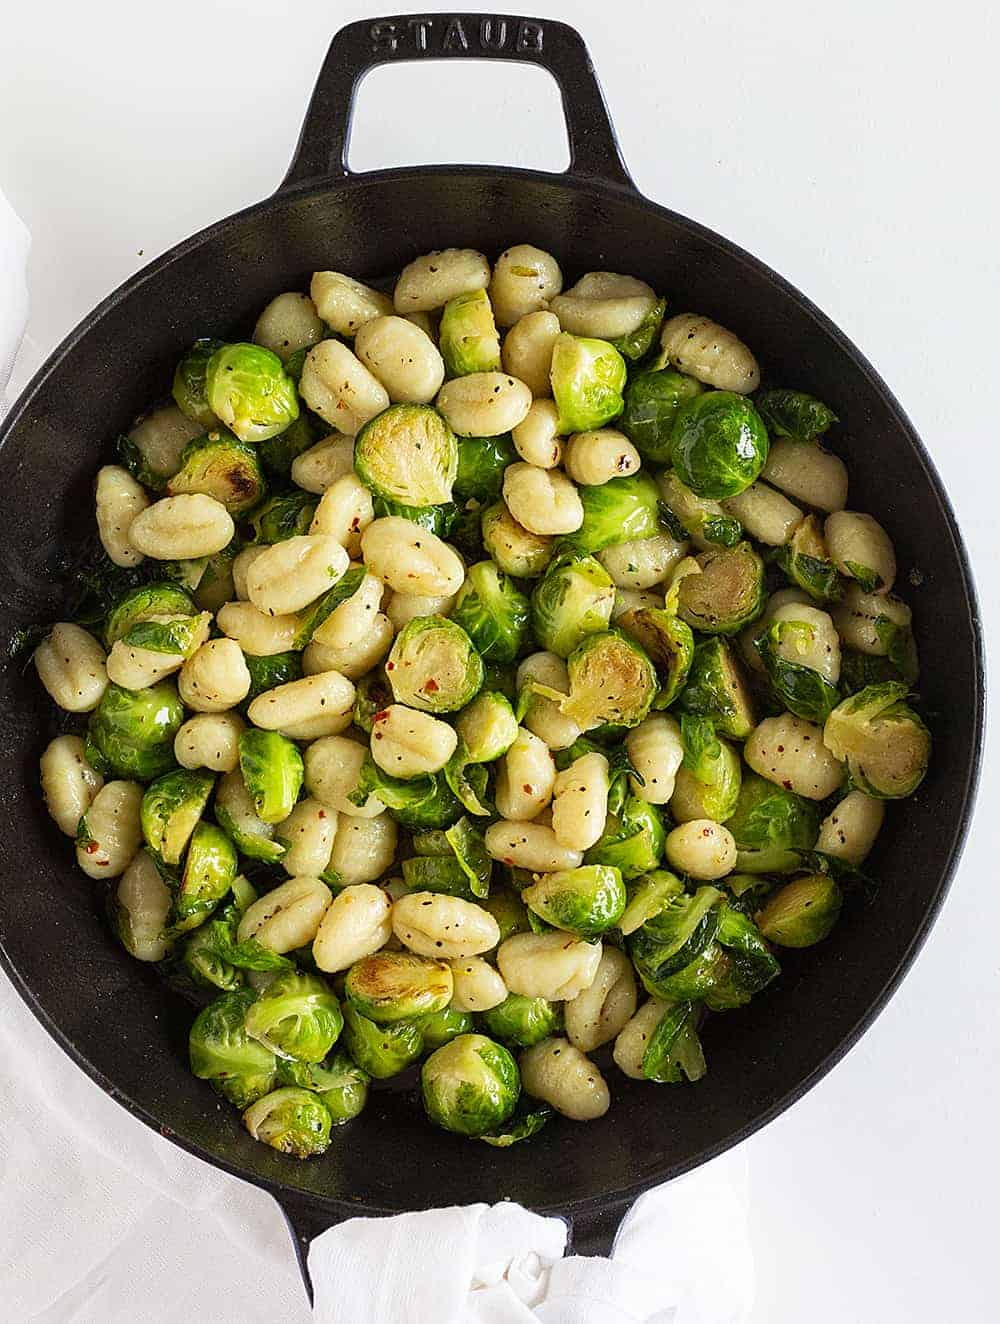 Overhead of Gnocchi with Brussels Sprouts in Skillet